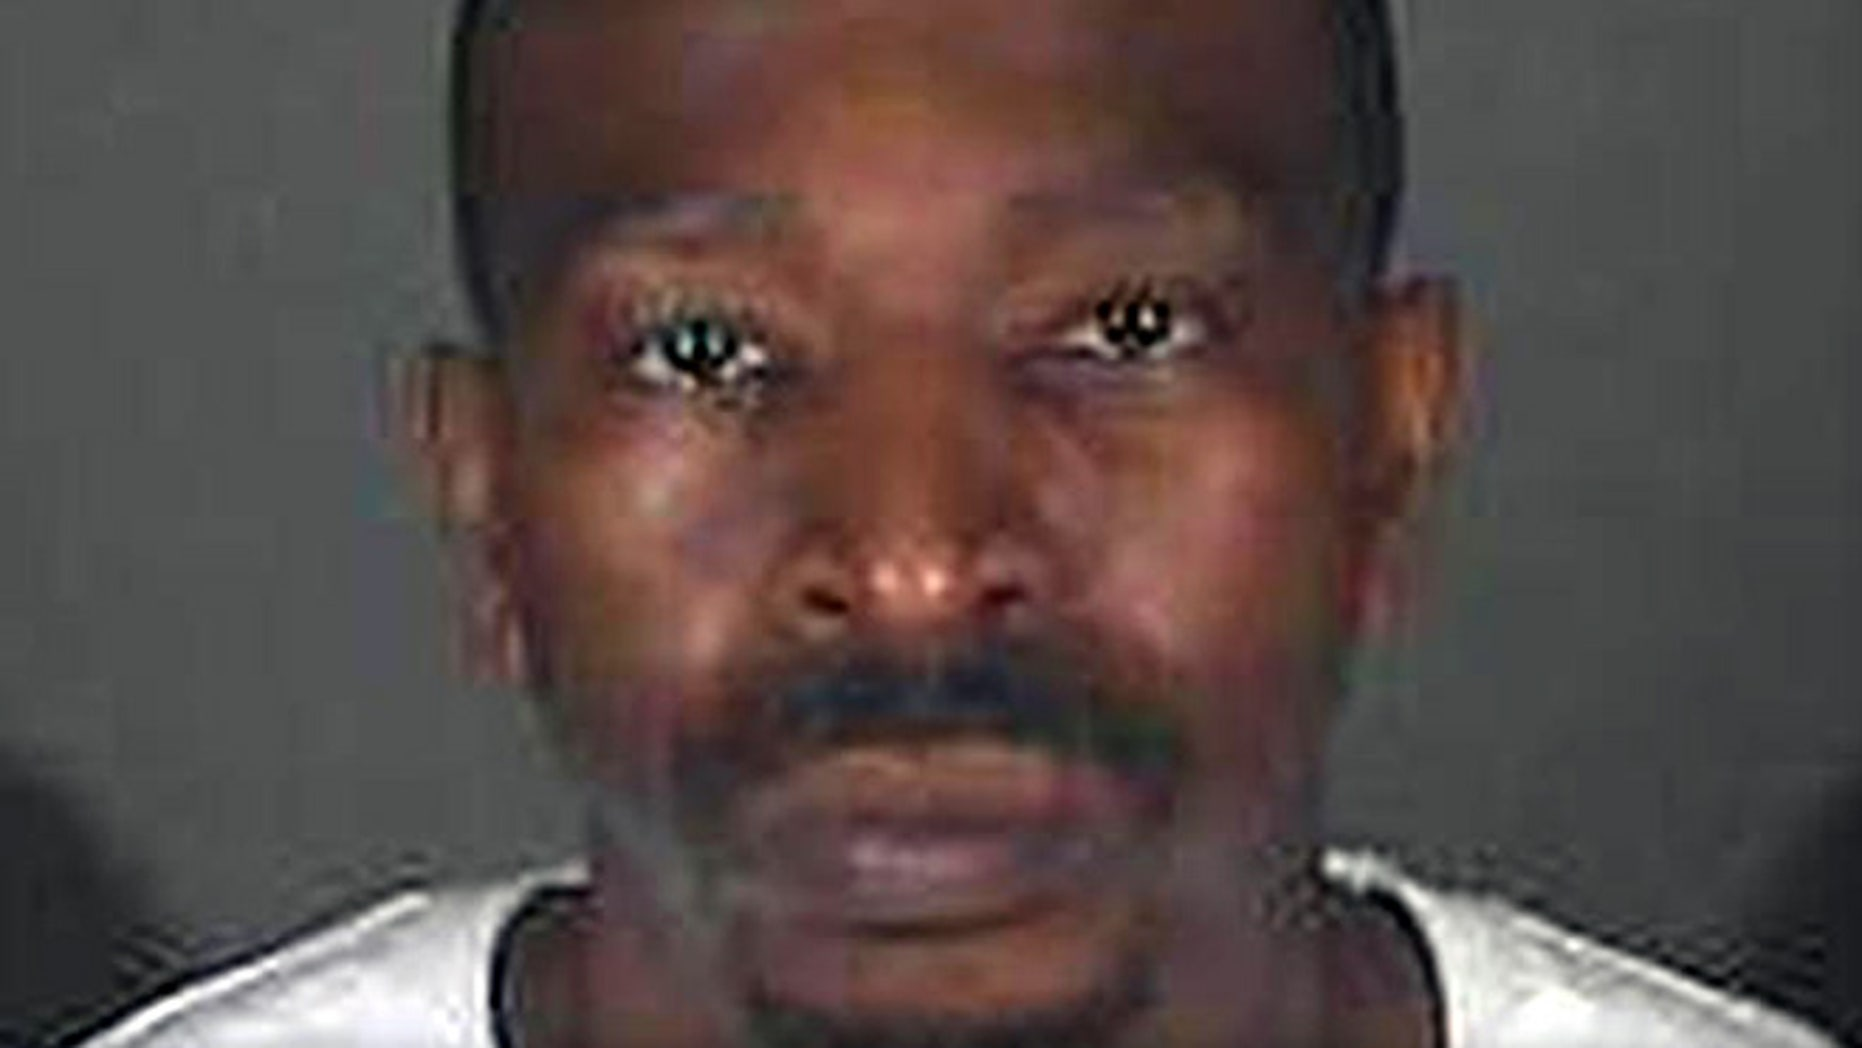 Los Angeles County authorities accidentally released Steven Lawrence Wright who was awaiting trial for a gang-related murder.